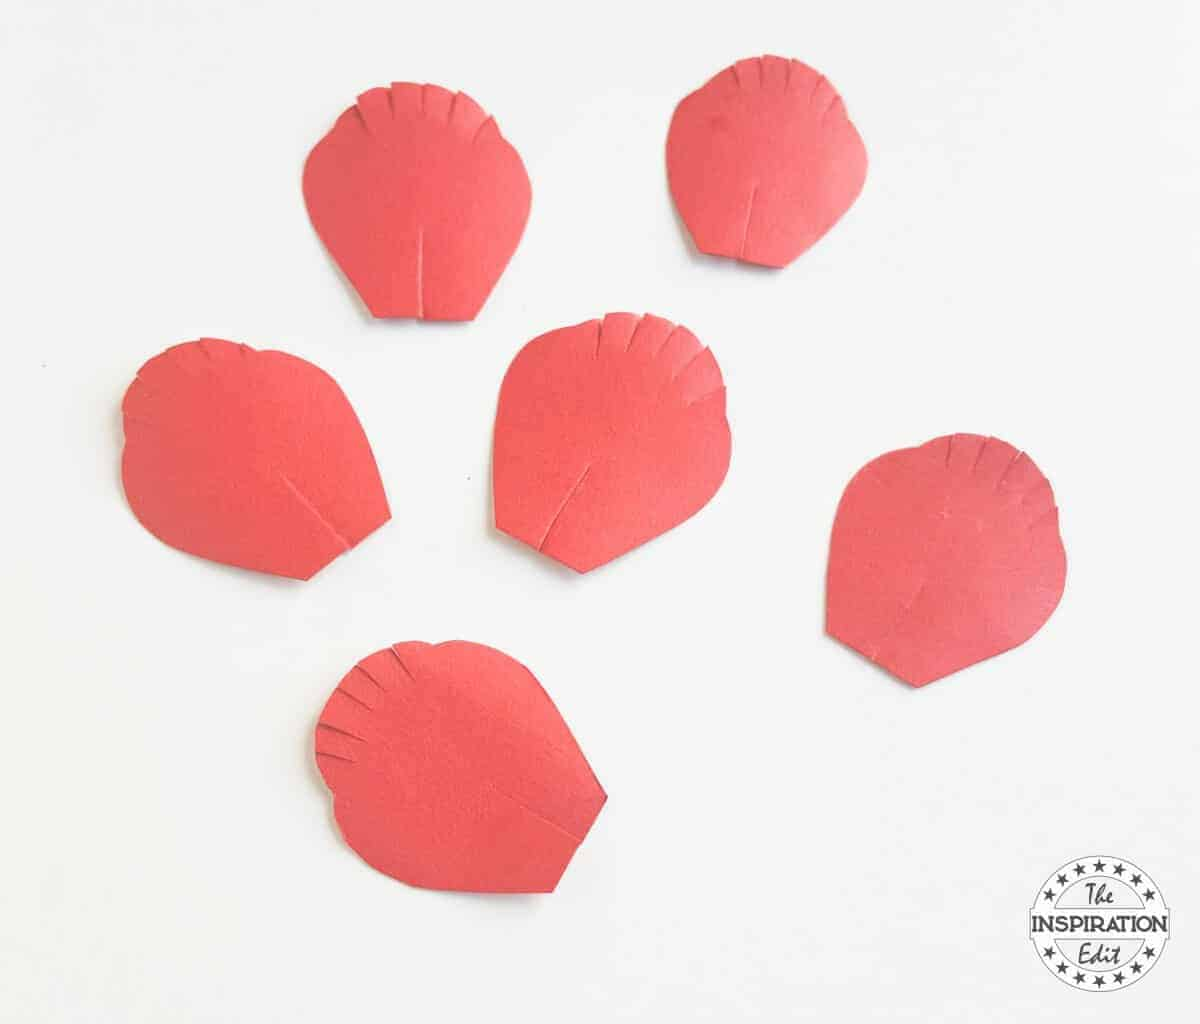 Poppy Flower With Poppy Craft Template · The Inspiration Edit